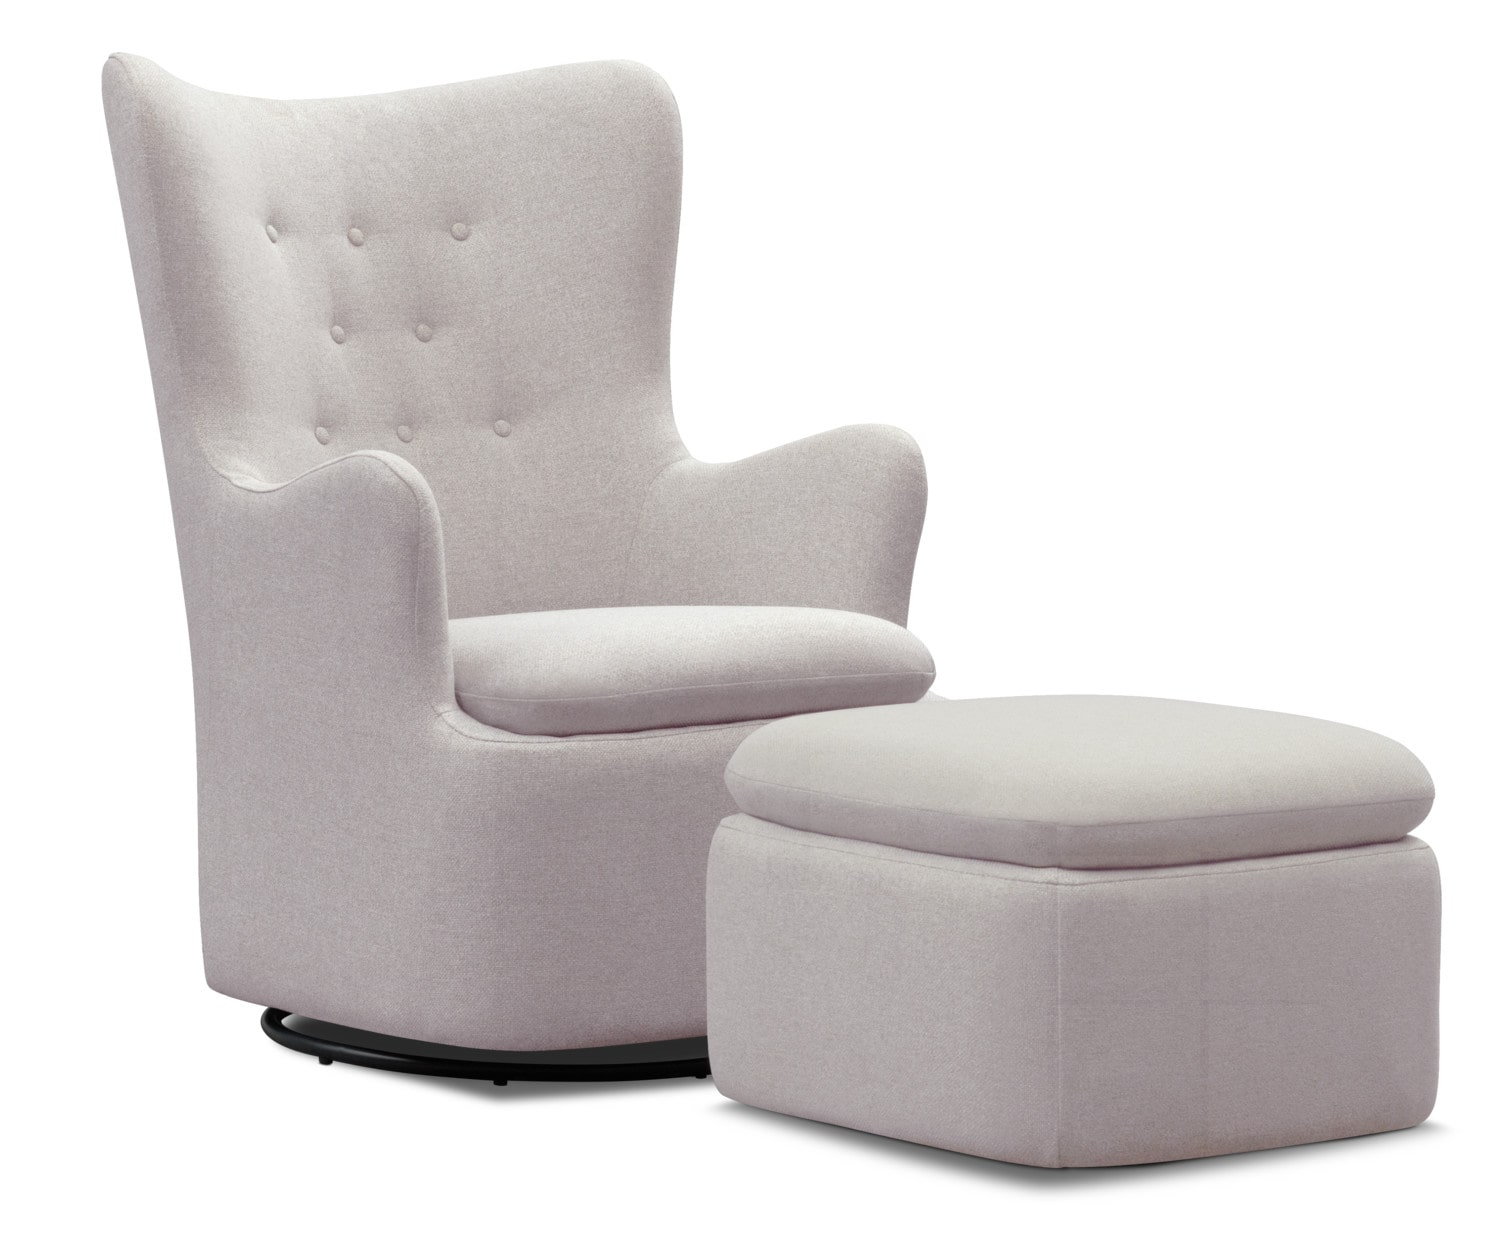 Chair Ottoman Addie Swivel Chair And Ottoman Set Gray